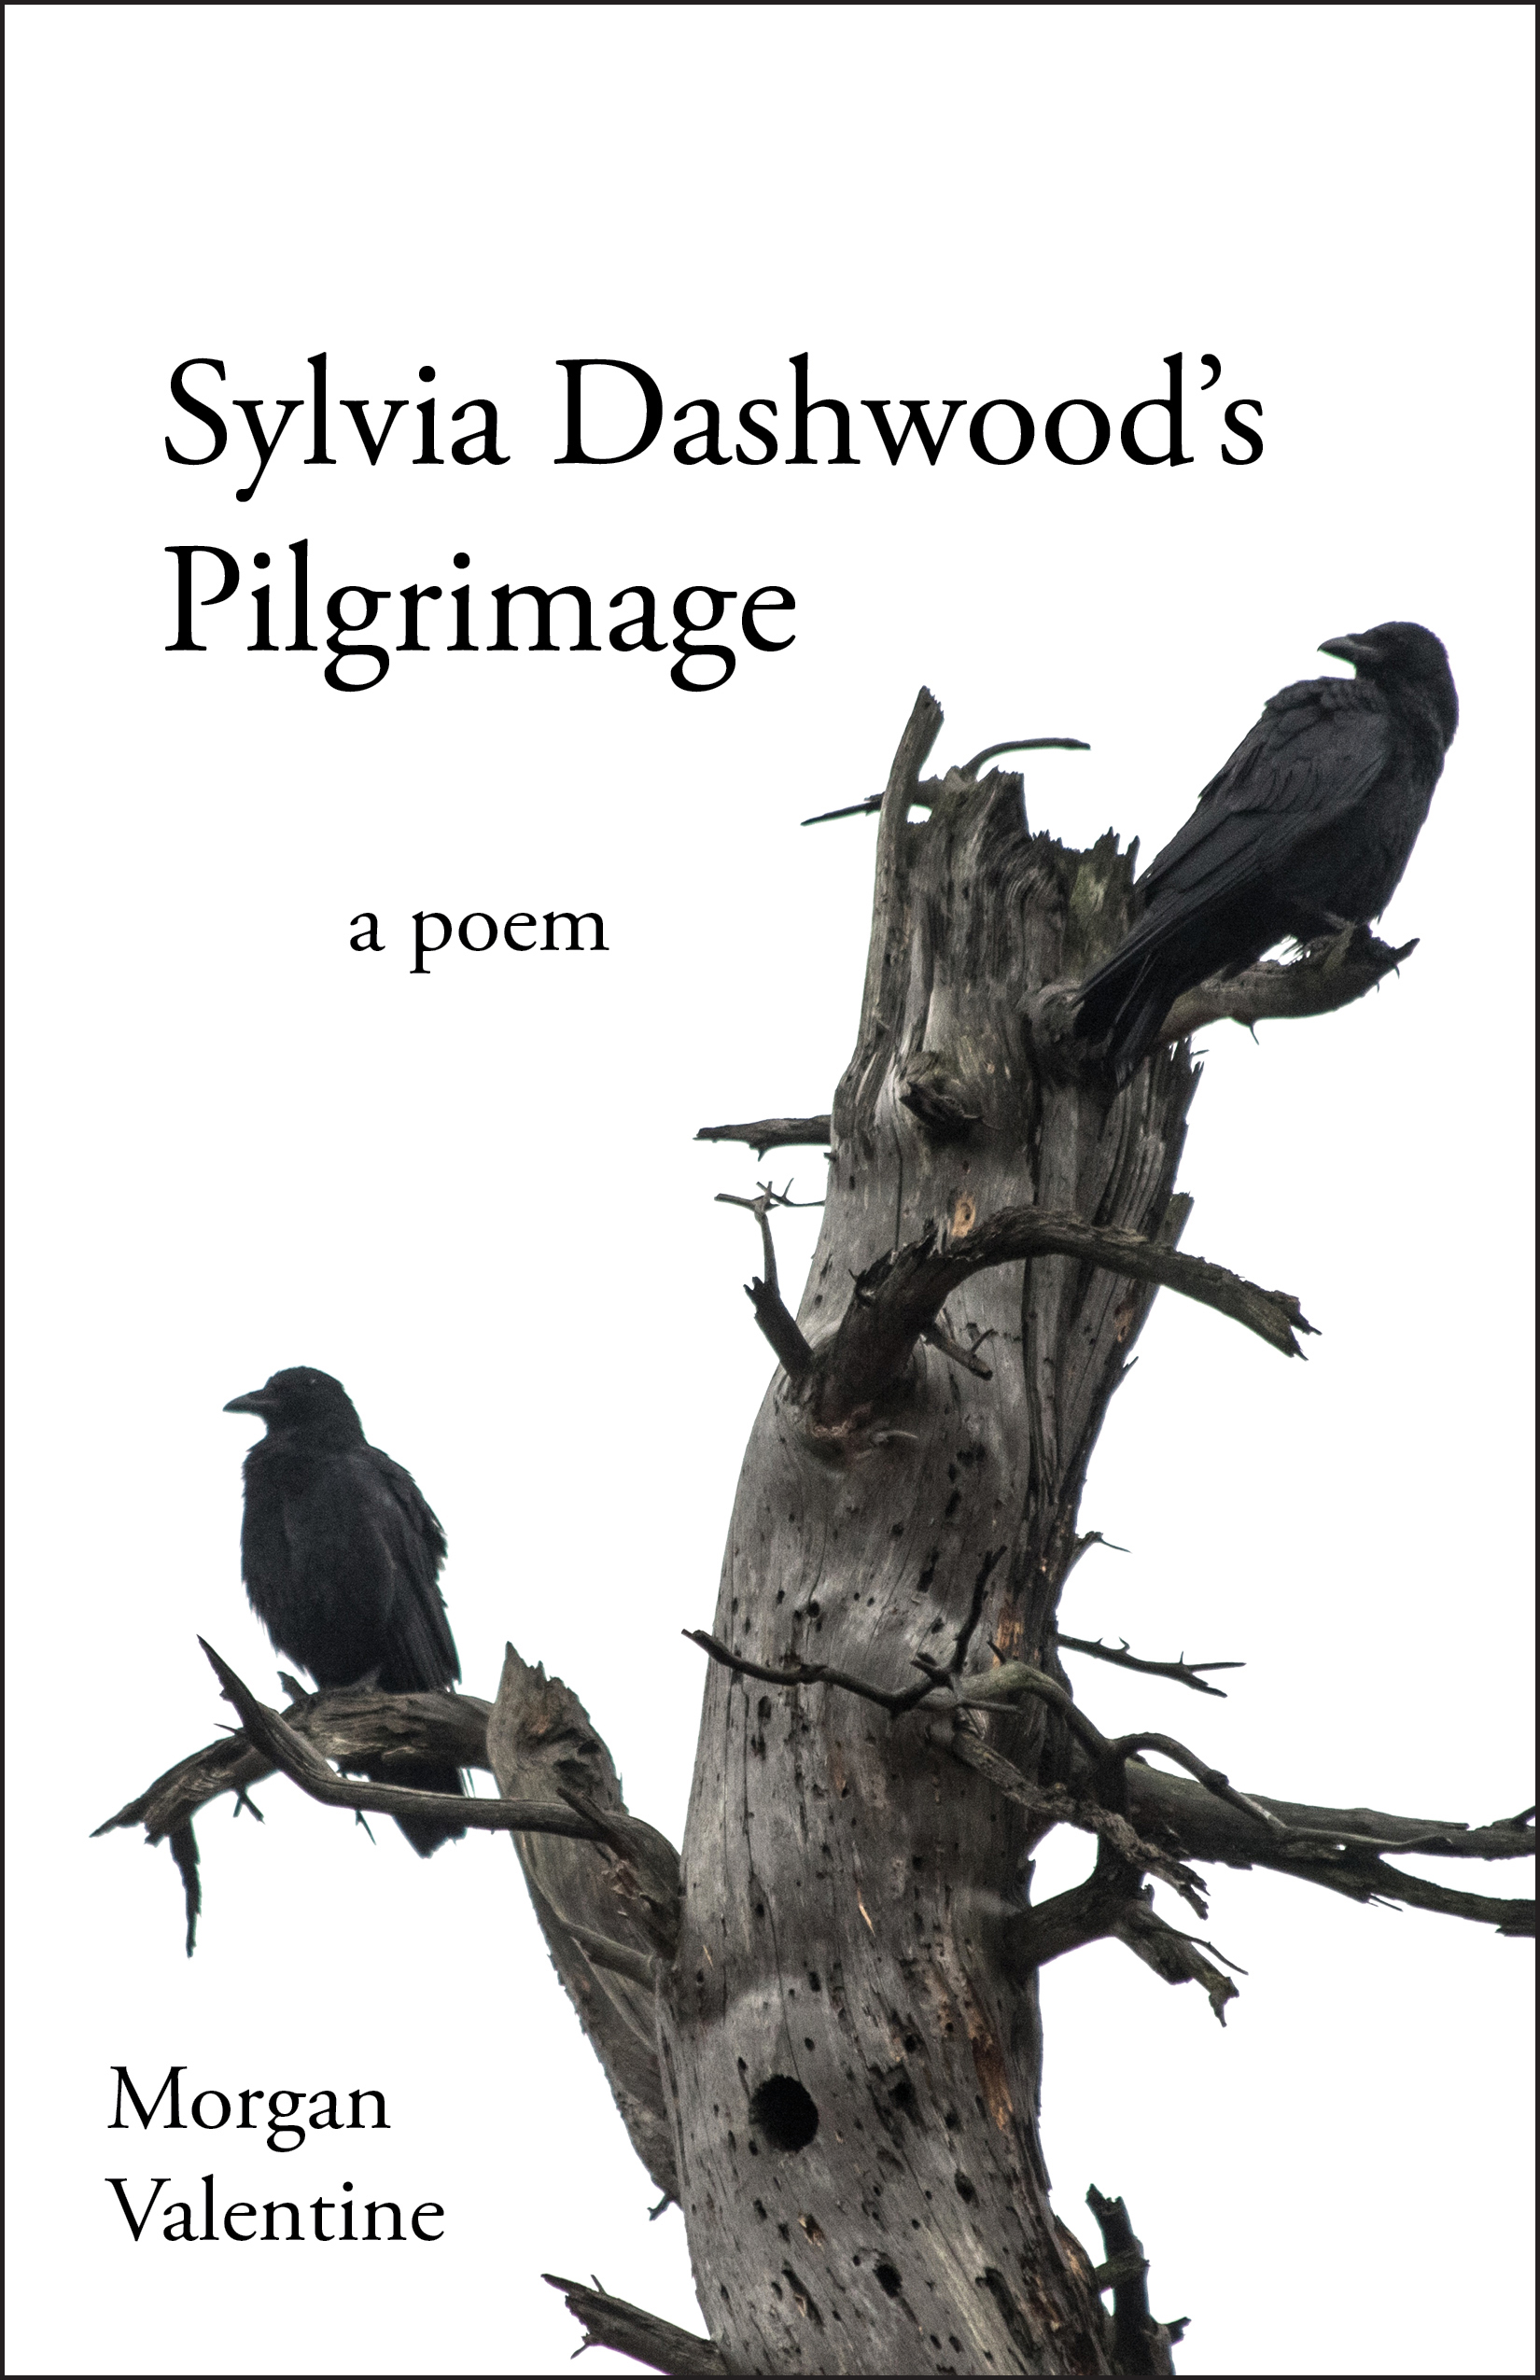 Sylvia Dashwood's Pilgrimage by Morgan Valentine